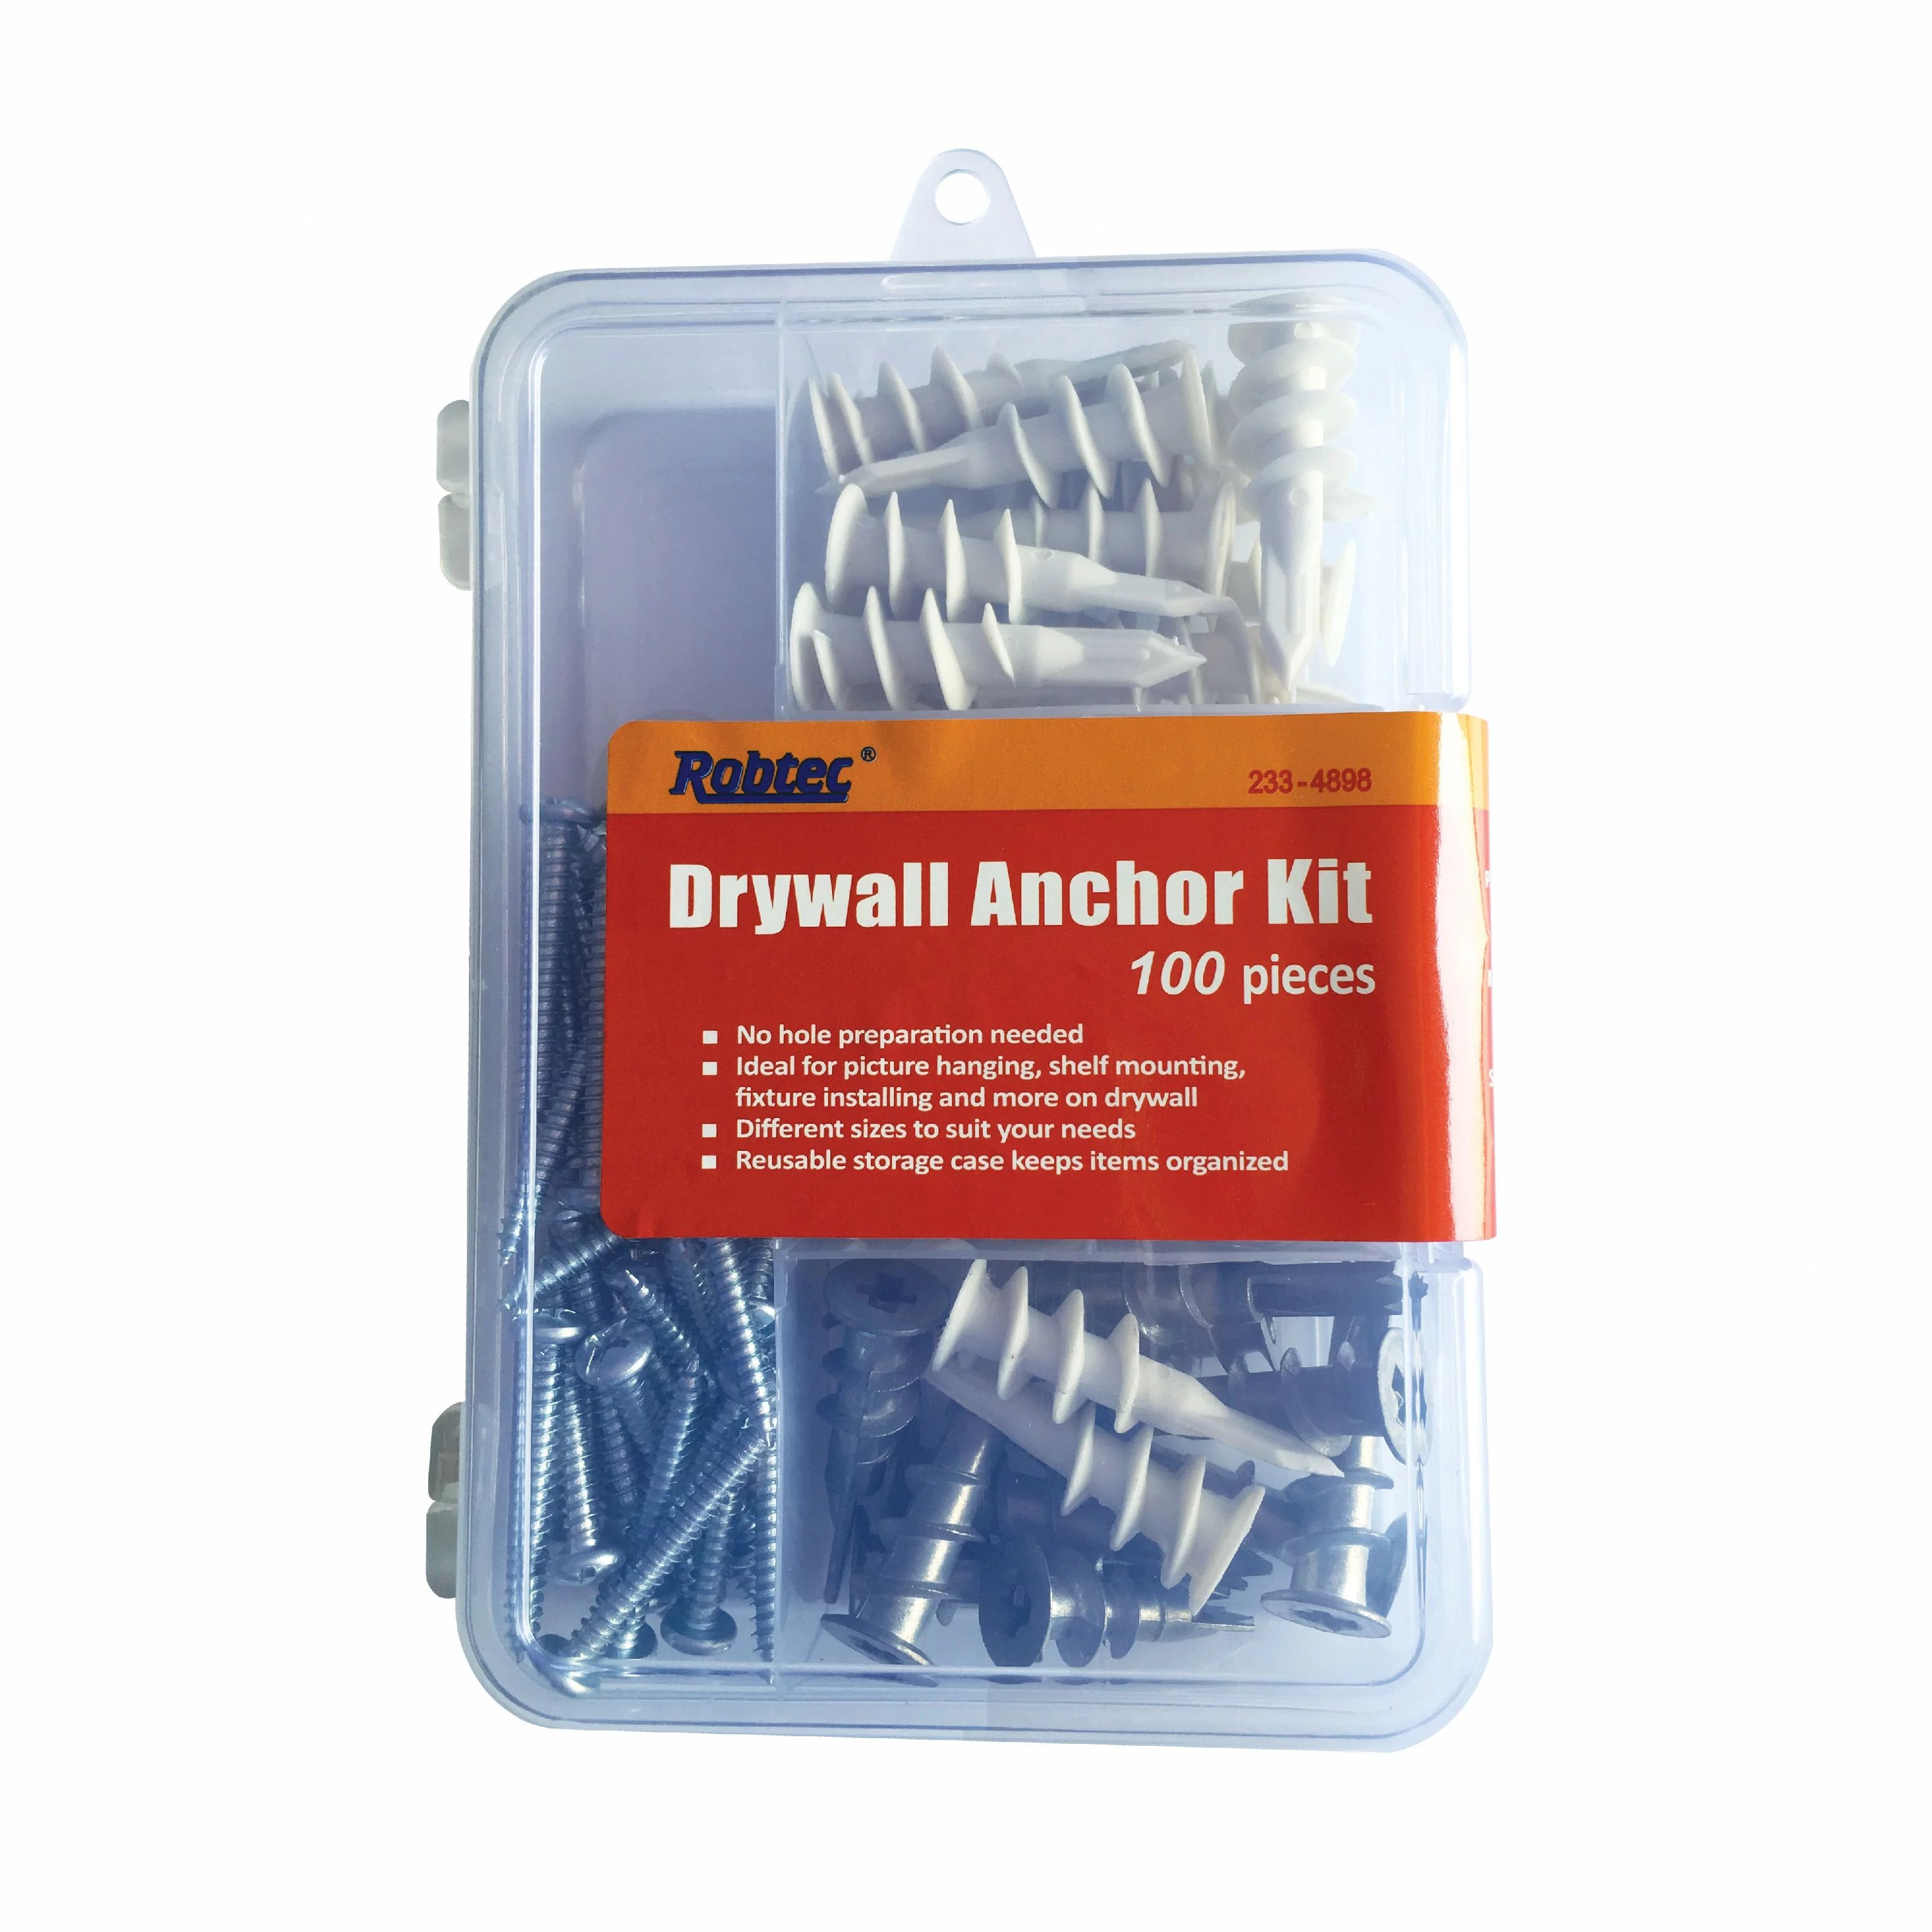 3 8 Drywall Robtec 3 8 ½ X 1 1 4 1 5 8 Drywall Anchor Assortment 100 Pack